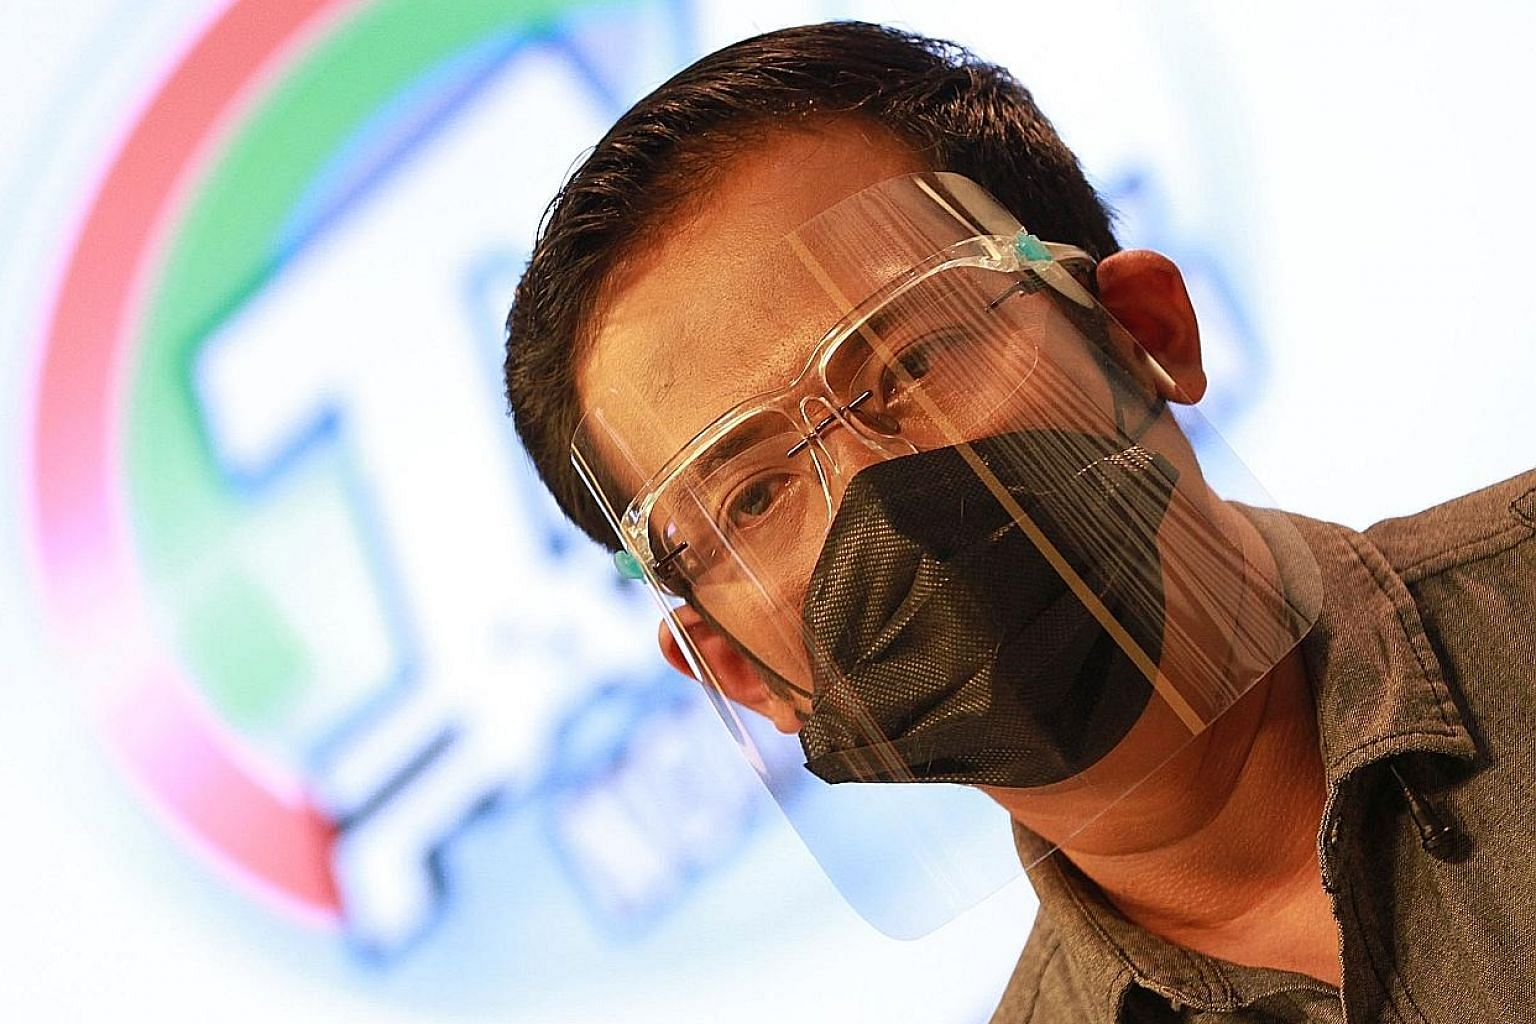 Mr Dhobie de Guzman is among hundreds of ABS-CBN journalists to lose their jobs as the broadcasting giant slashes its operations. PHOTO: AGENCE FRANCE-PRESSE